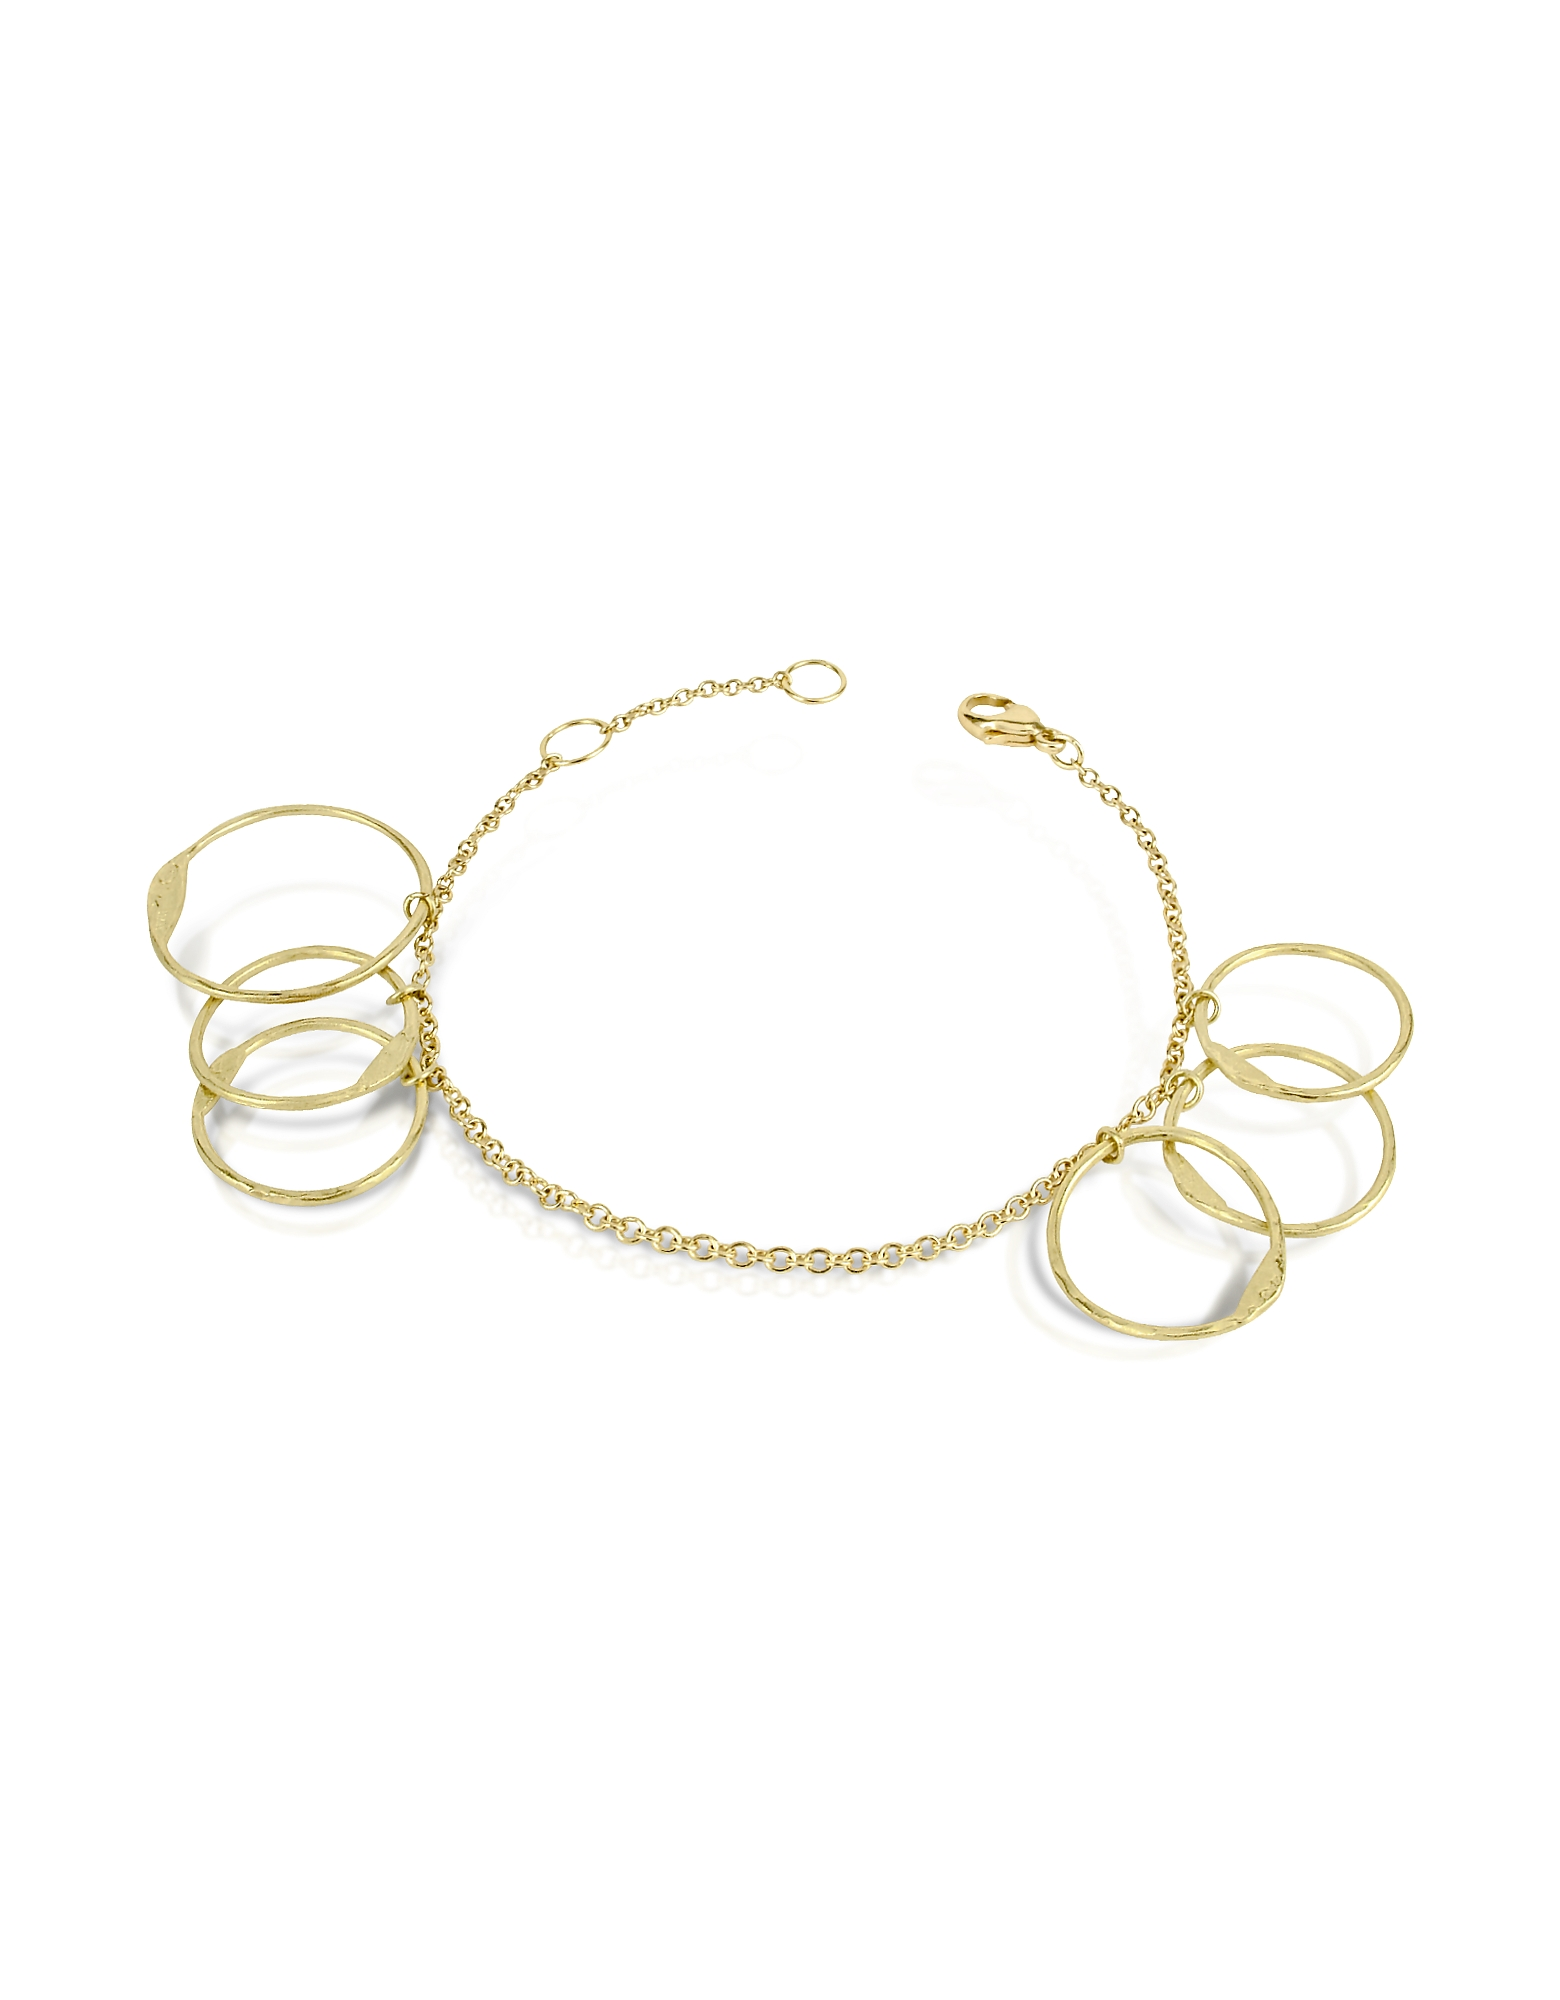 Torrini Bracelets, Milly - 18K Yellow Gold Circles Chain Bracelet